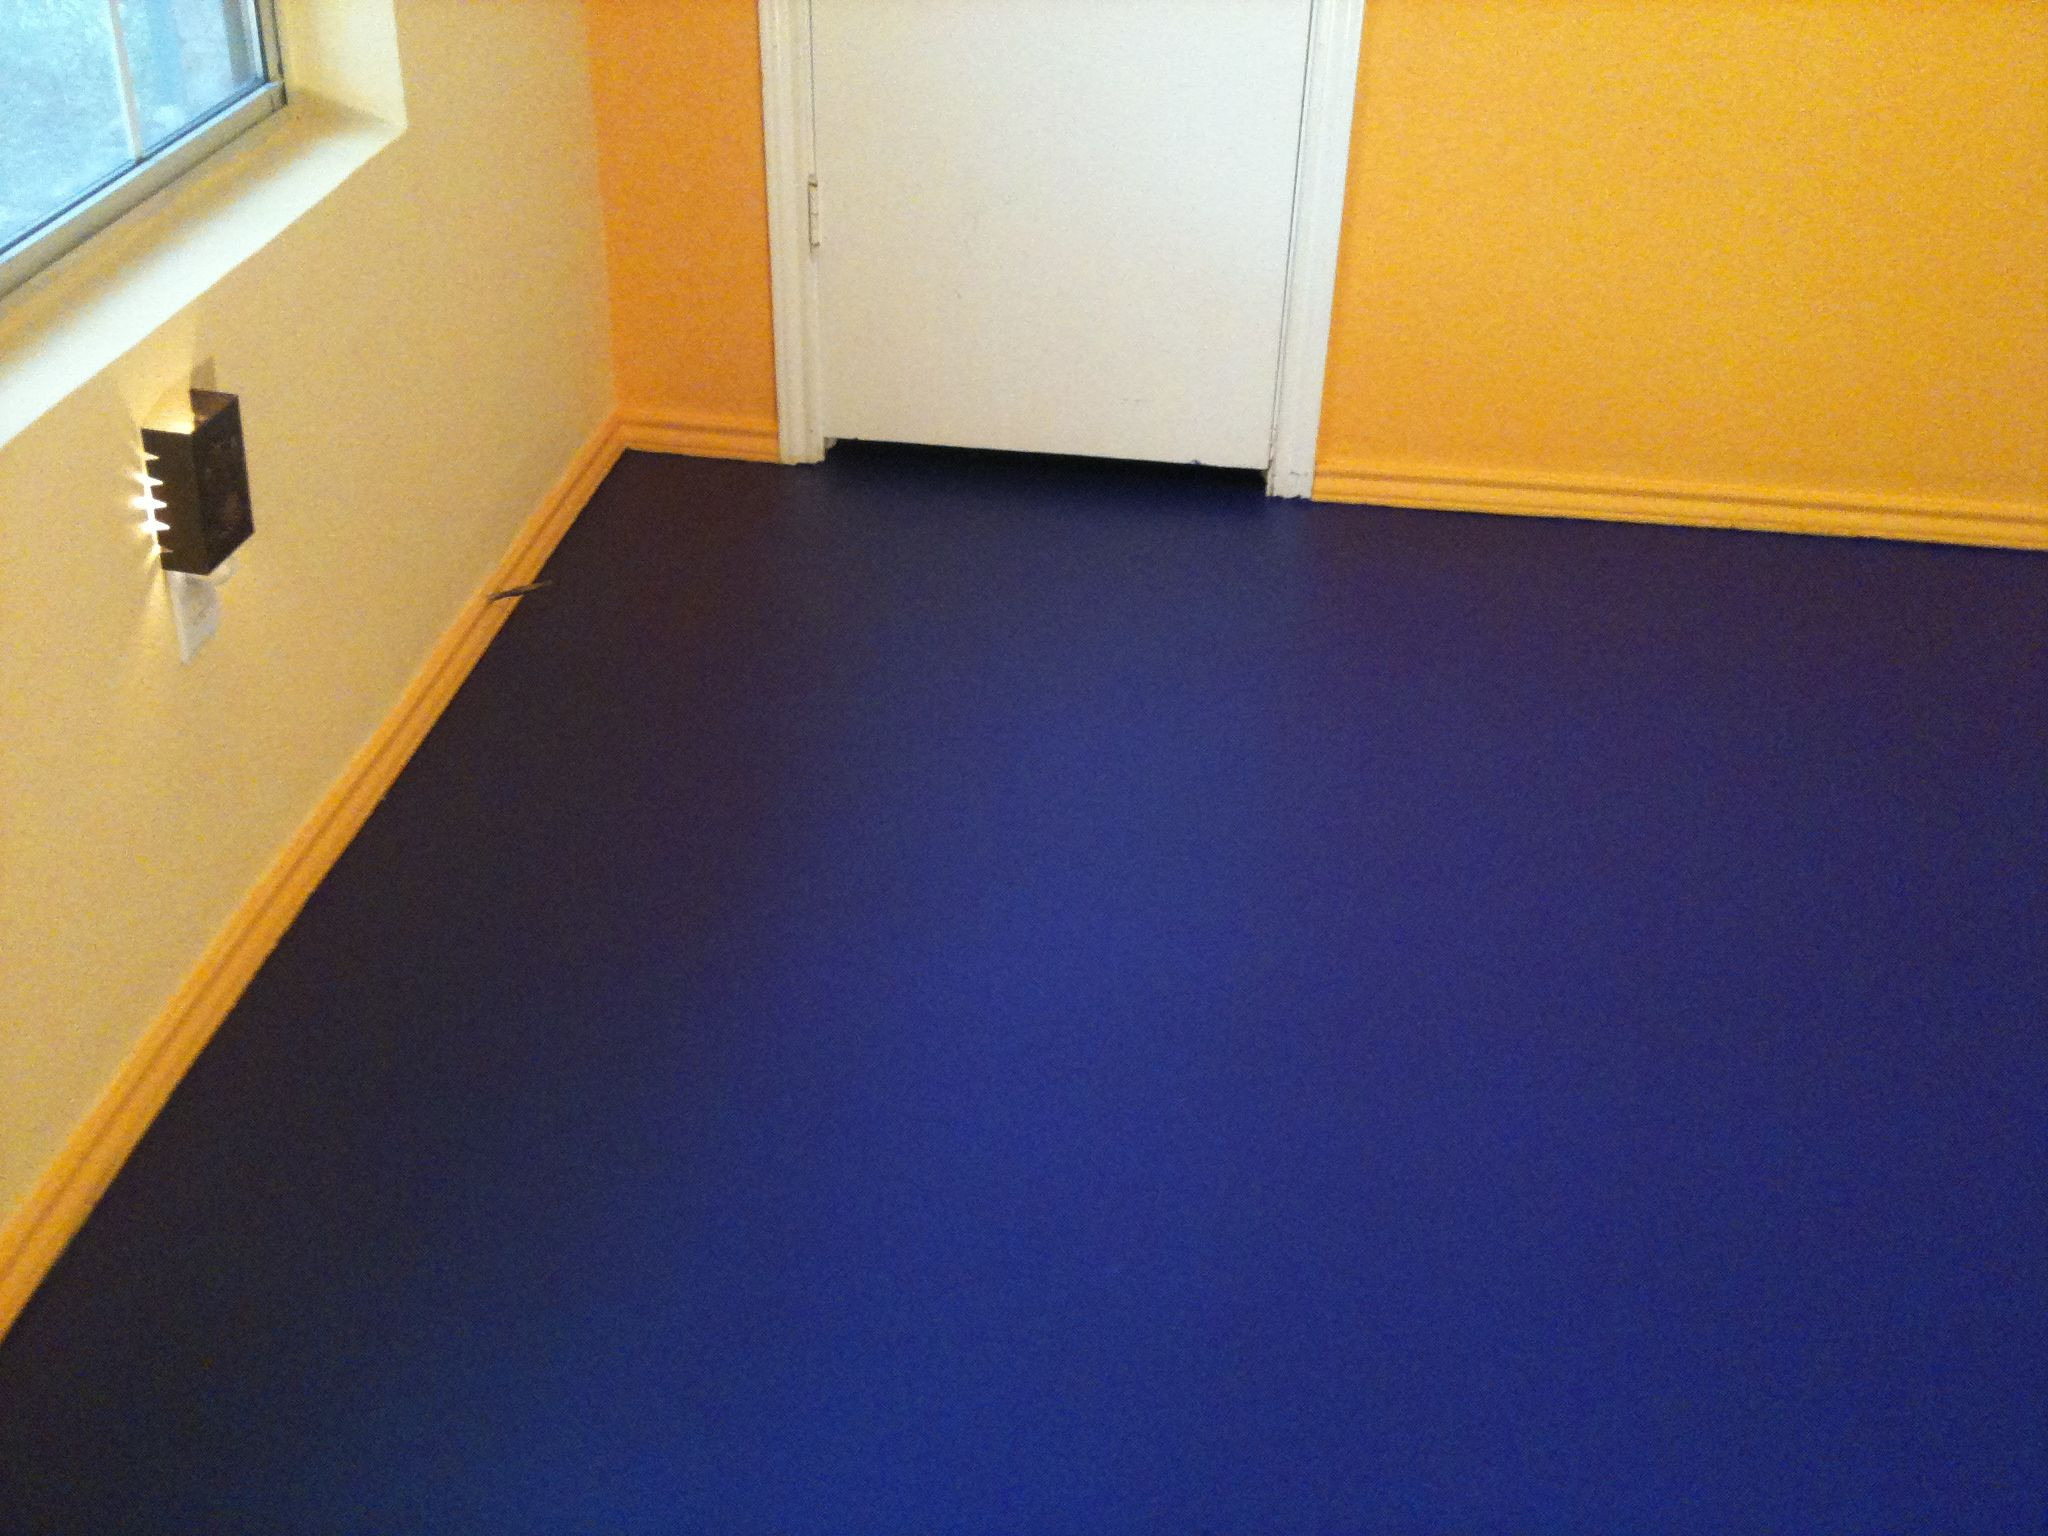 Best ideas about Floor Paint Colors . Save or Pin Samples flooring Extraordinary Painted Concrete Floors Now.